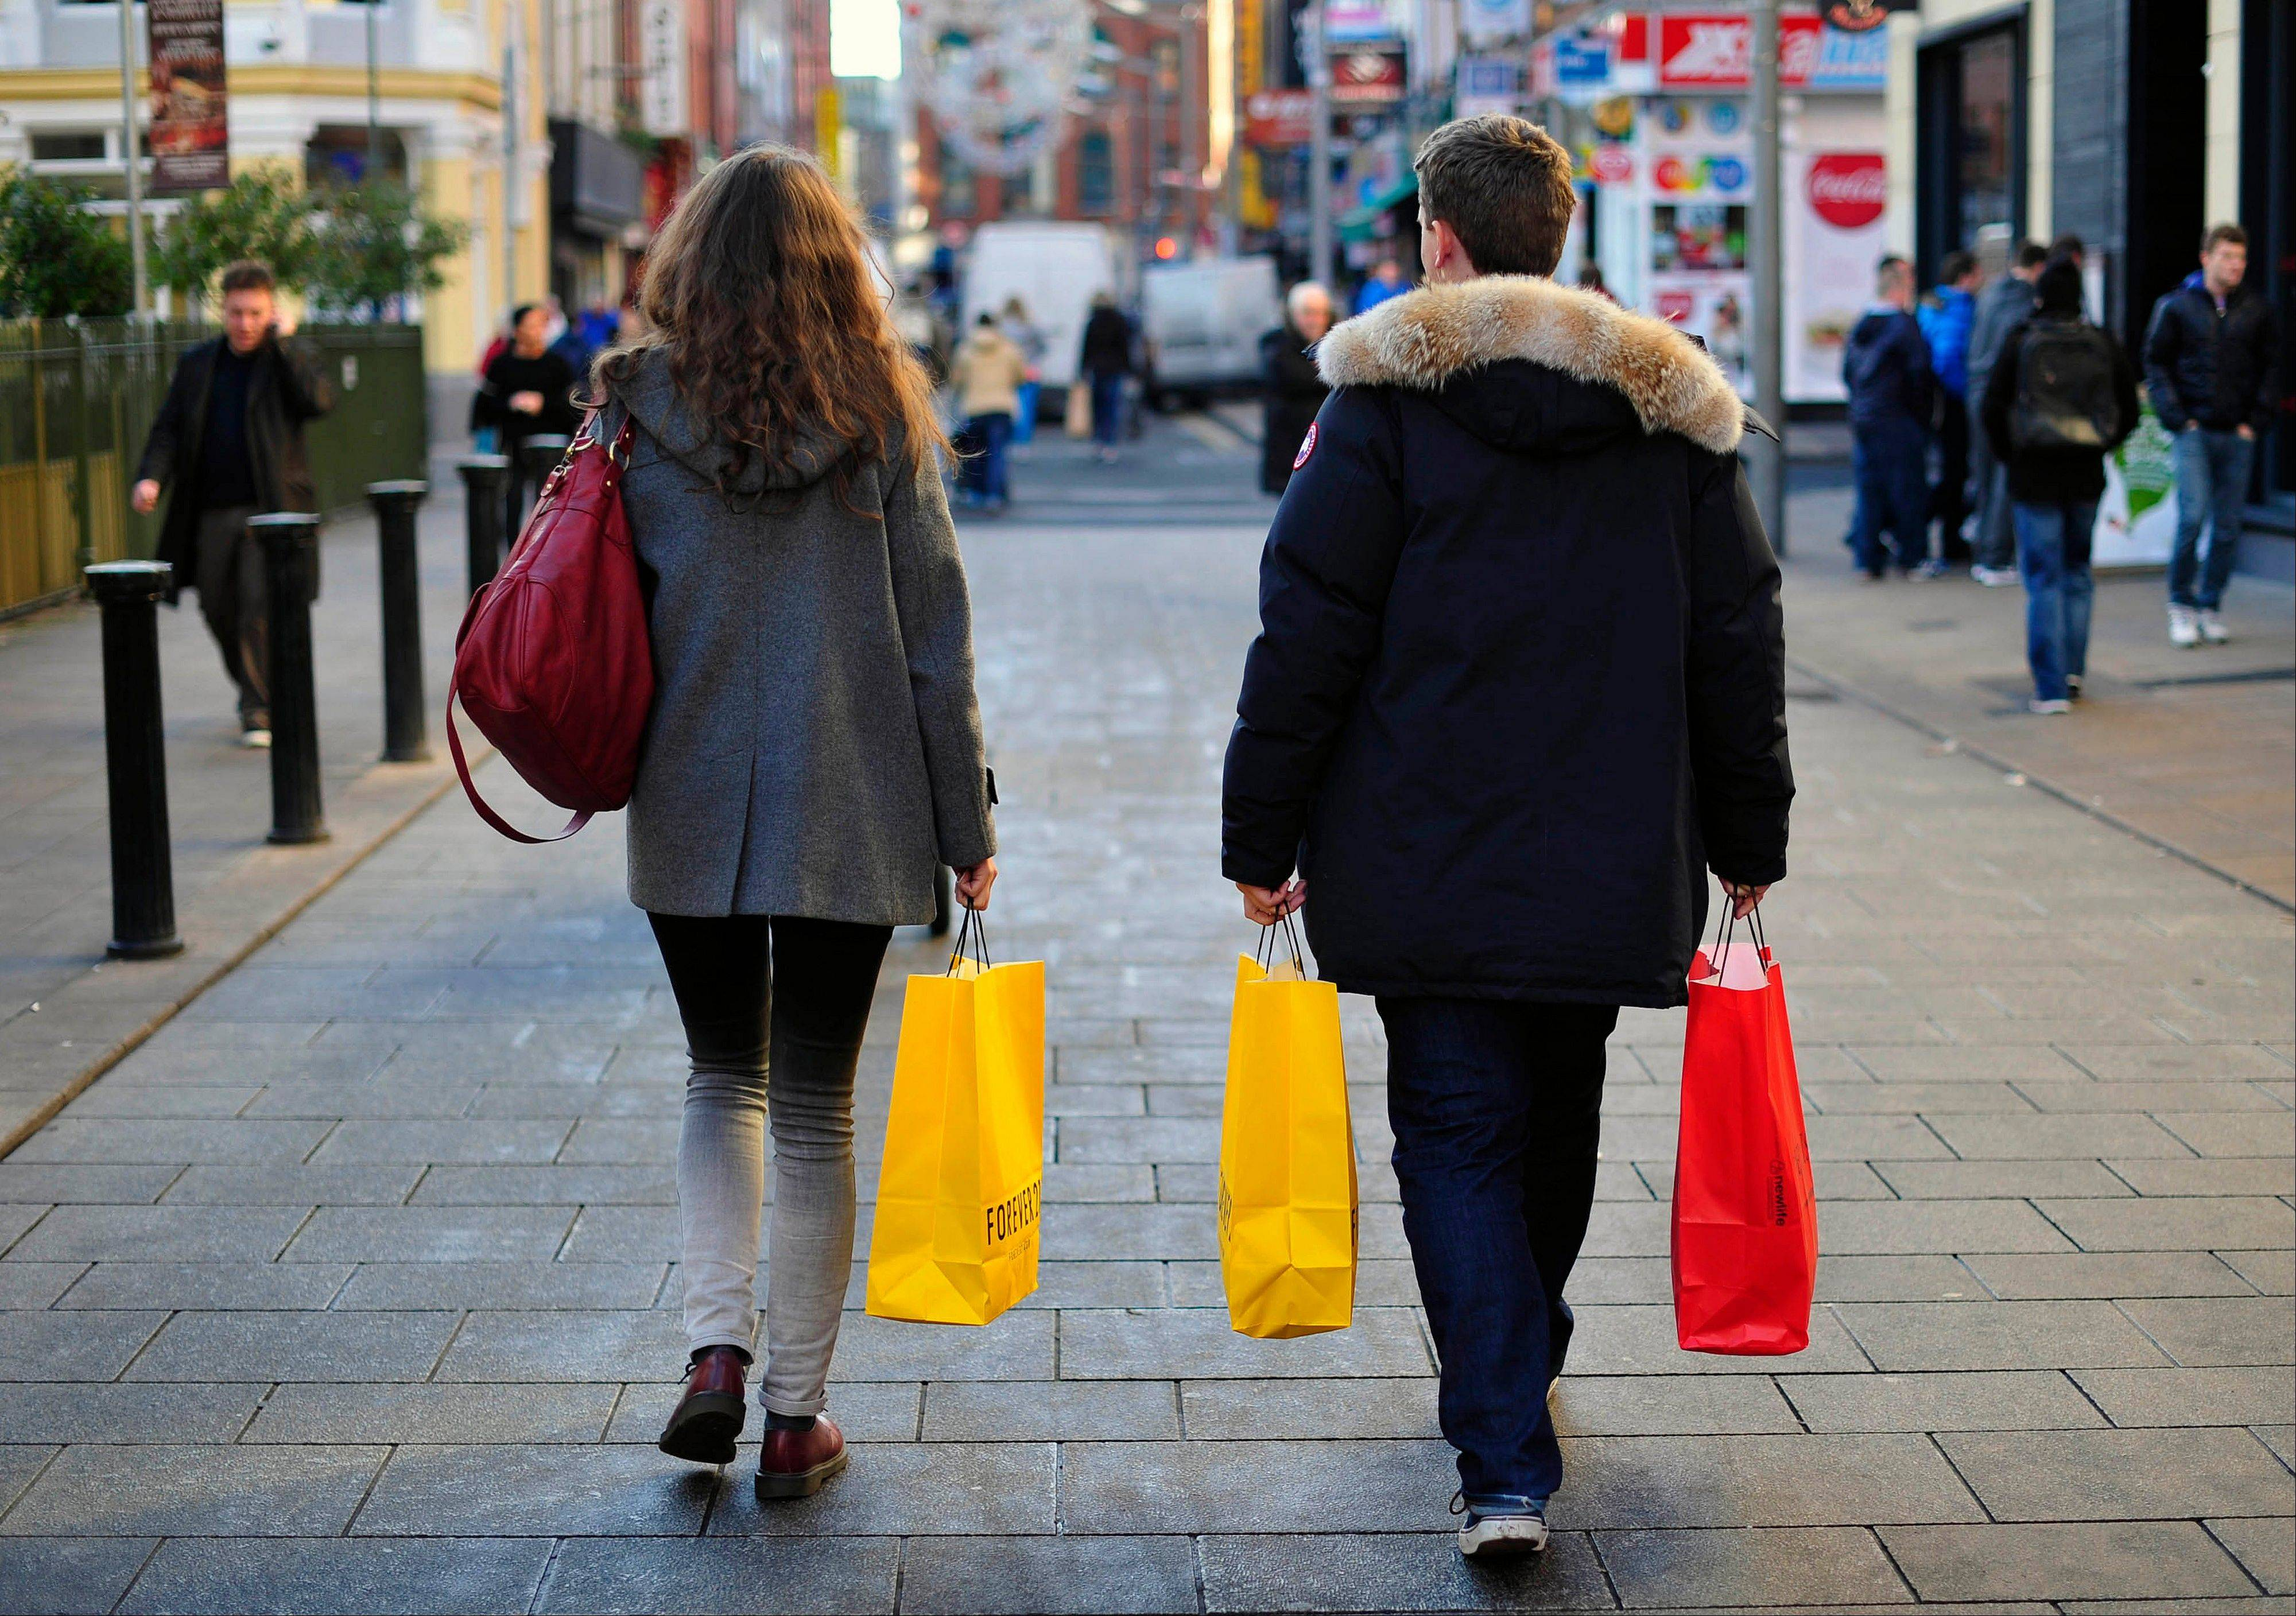 U.K. retail-sales growth eased more than economists forecast in December and may cool further in early 2013, according to a monthly report from the Confederation of British Industry.